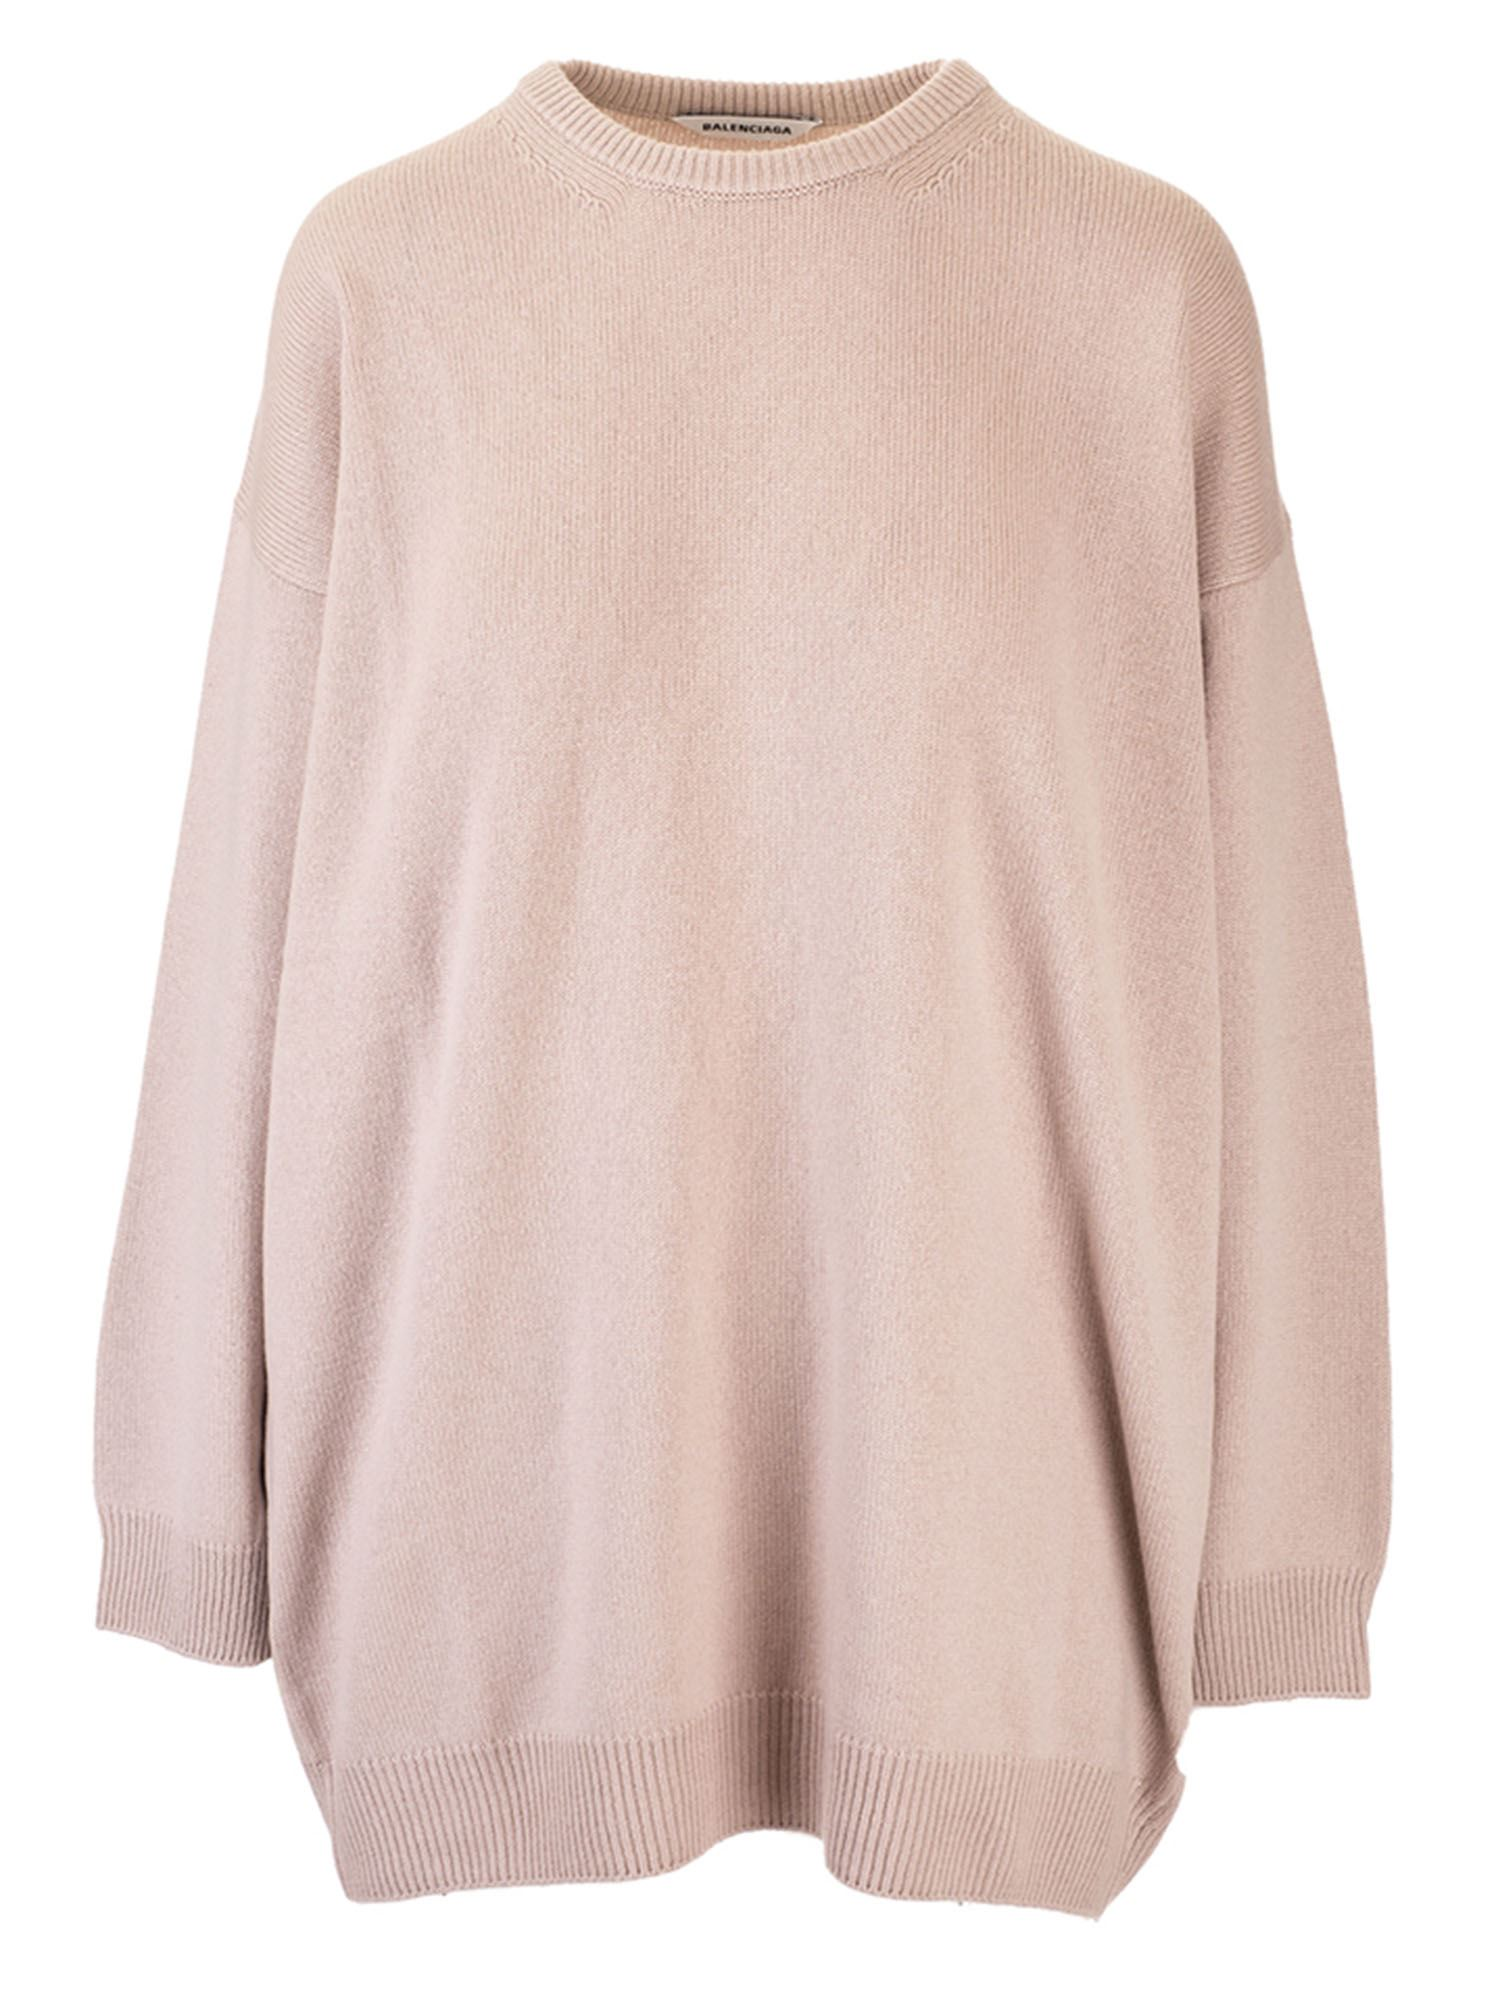 Balenciaga REAR LOGO SWEATER IN BEIGE